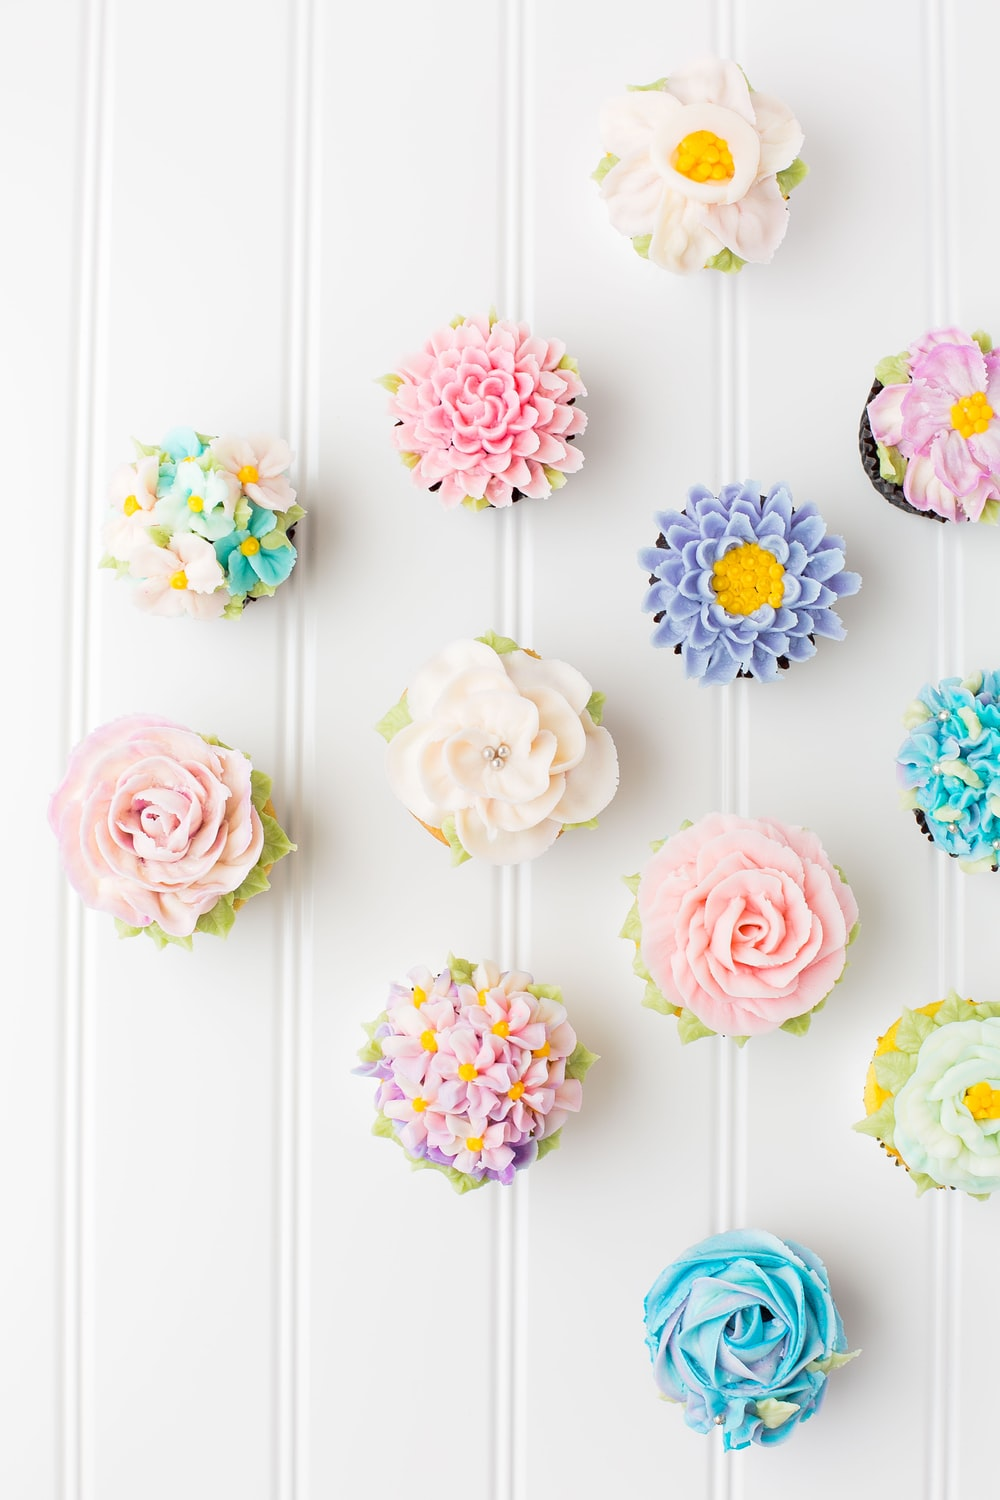 flower cupcakes on white surface